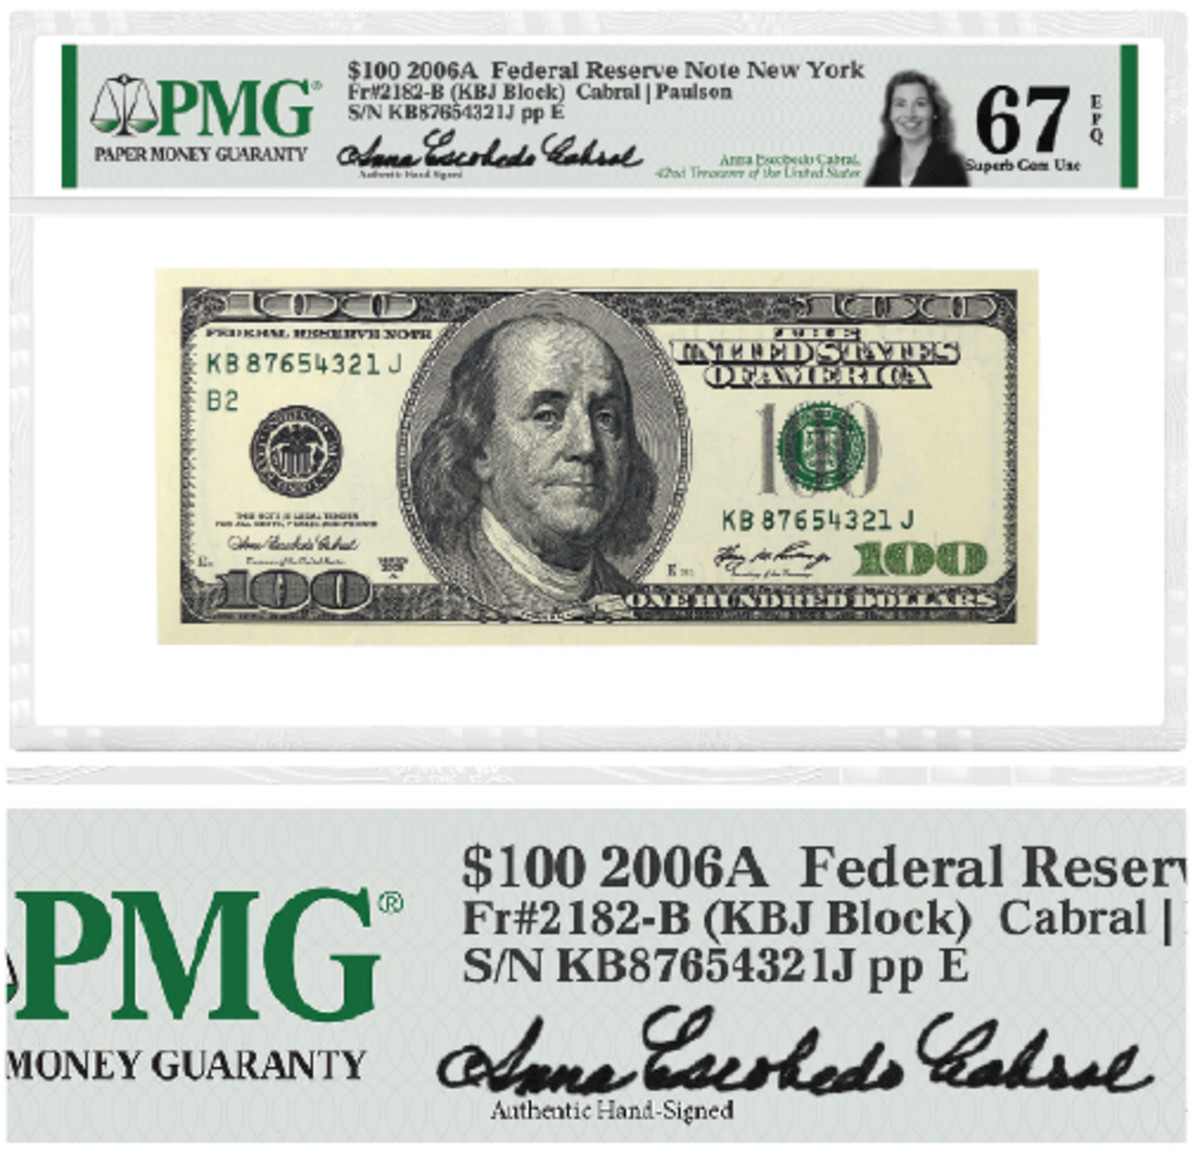 Hand-signed labels featuring the signature of Anna Escobedo Cabral, the 42nd Treasurer of the United States, will soon be available from Paper Money Guaranty. (Images courtesy PMG®)